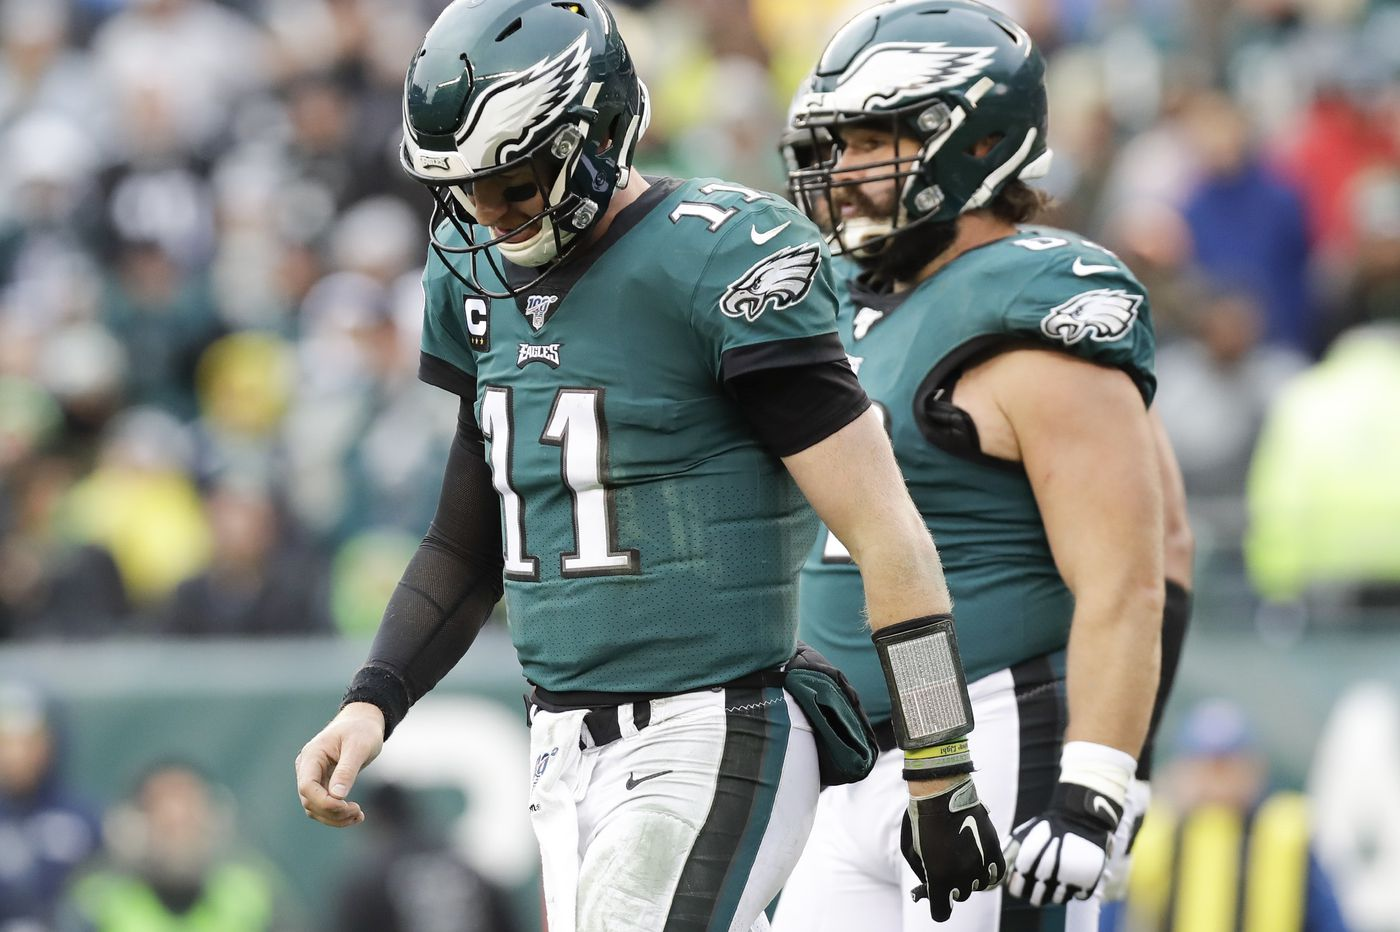 Carson Wentz awful again as defense shines again, and other takeaways from Eagles' loss to Seahawks | Marcus H